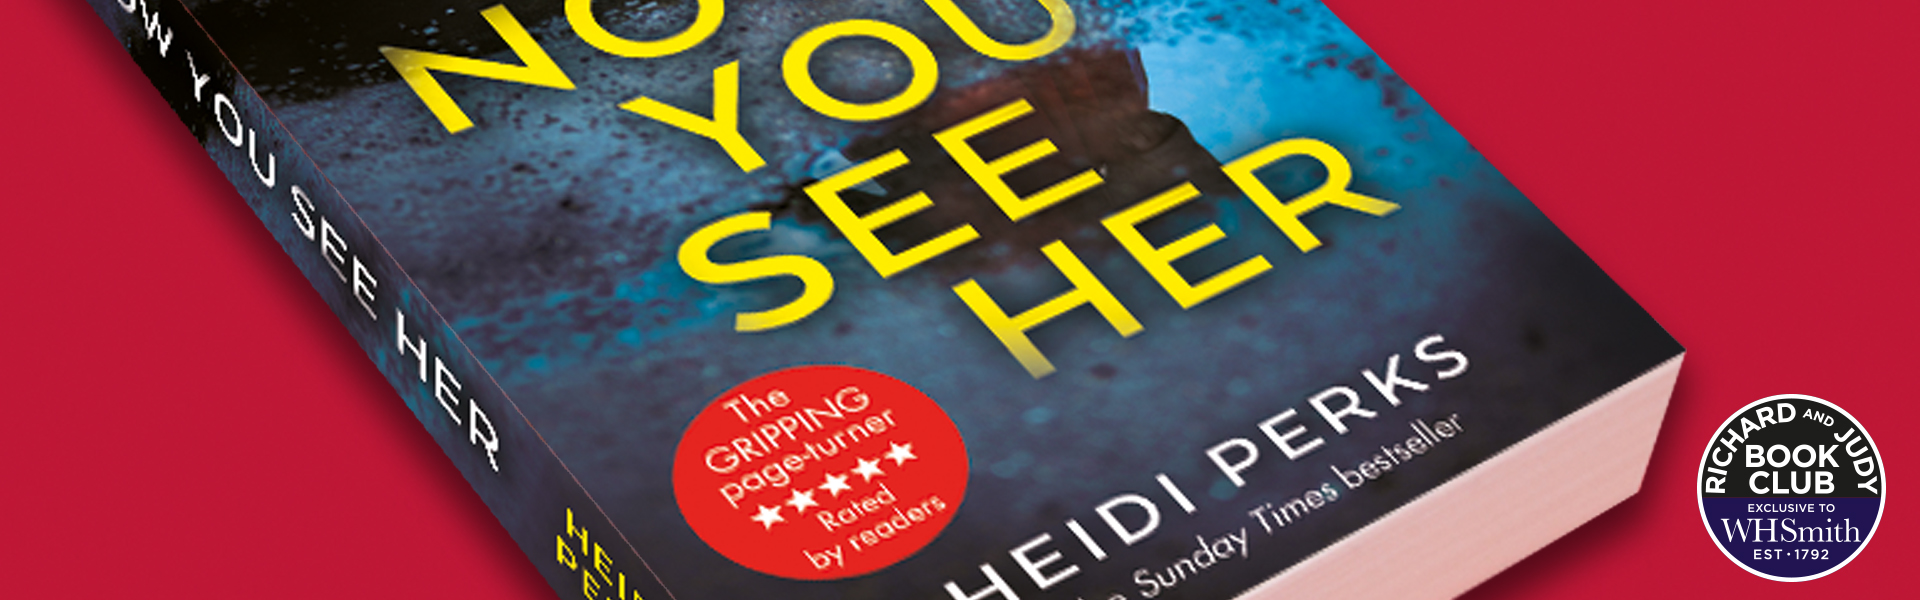 Richard and Judy Introduce Now You See Her by Heidi Perks